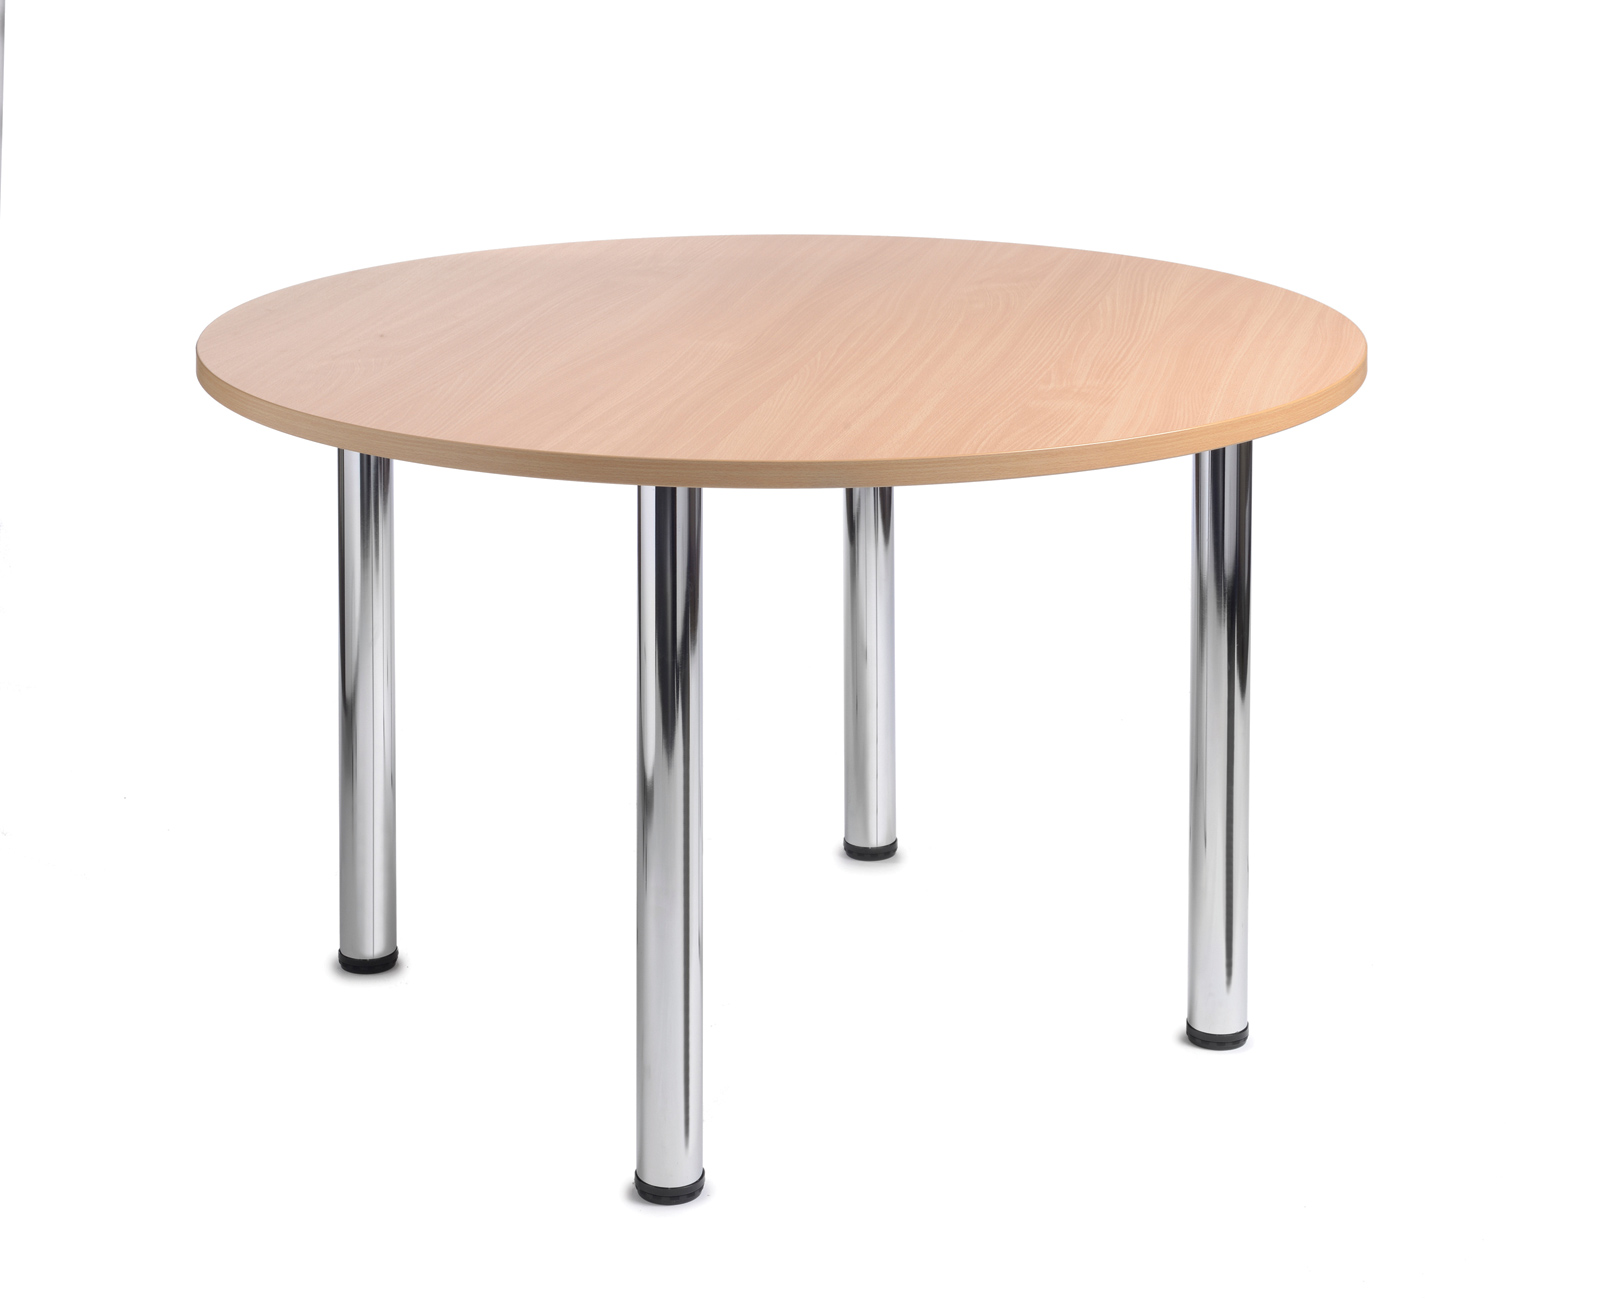 1000mm diameter Top + Chrome radial Legs - Beech